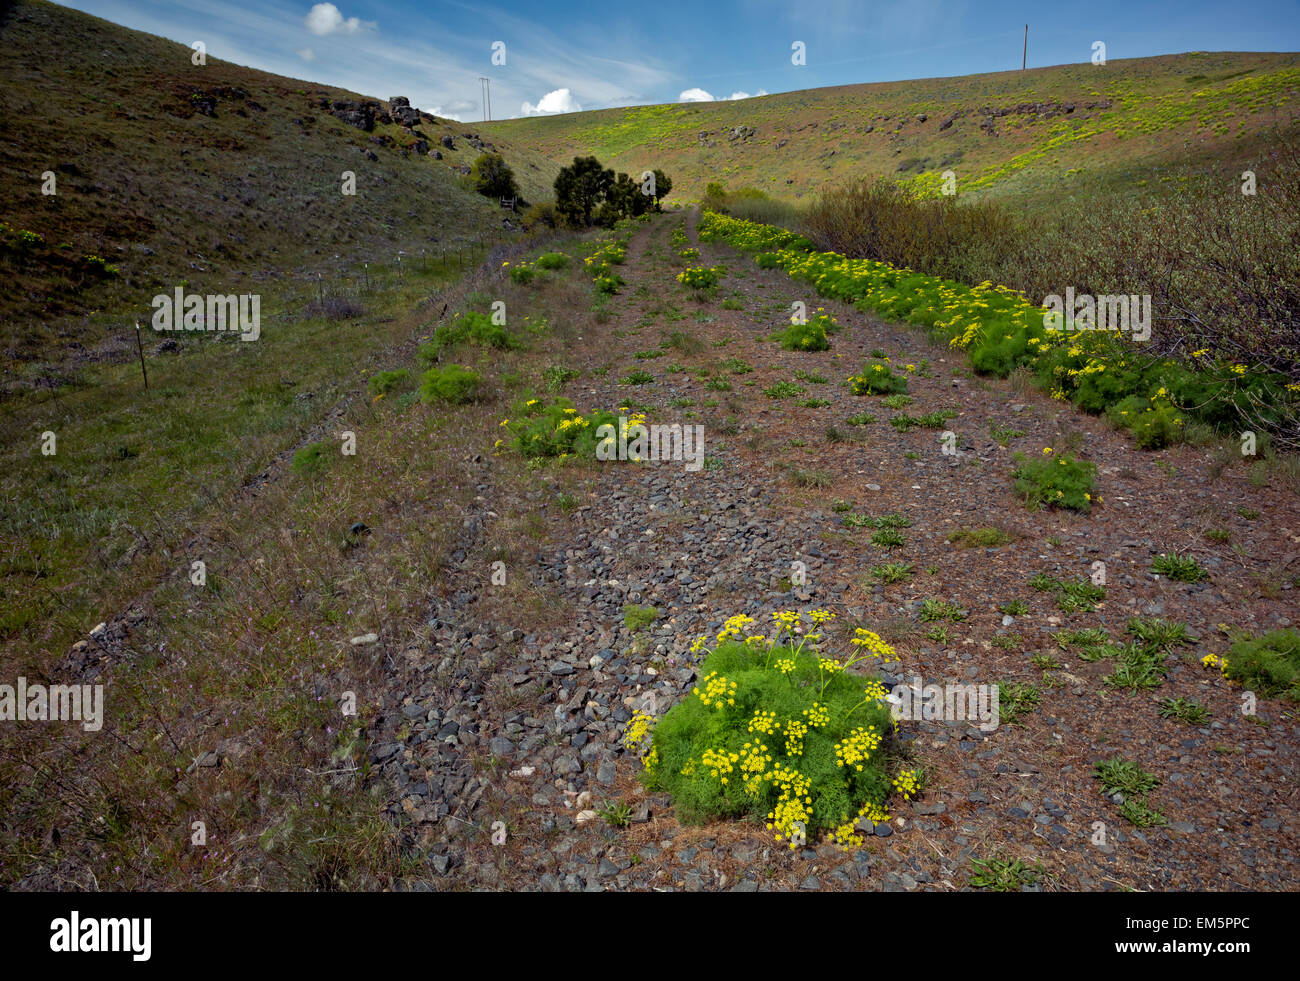 WA10318-00...WASHINGTON - The Klickitat Trail, an old railroad grade, near Harms Road. - Stock Image